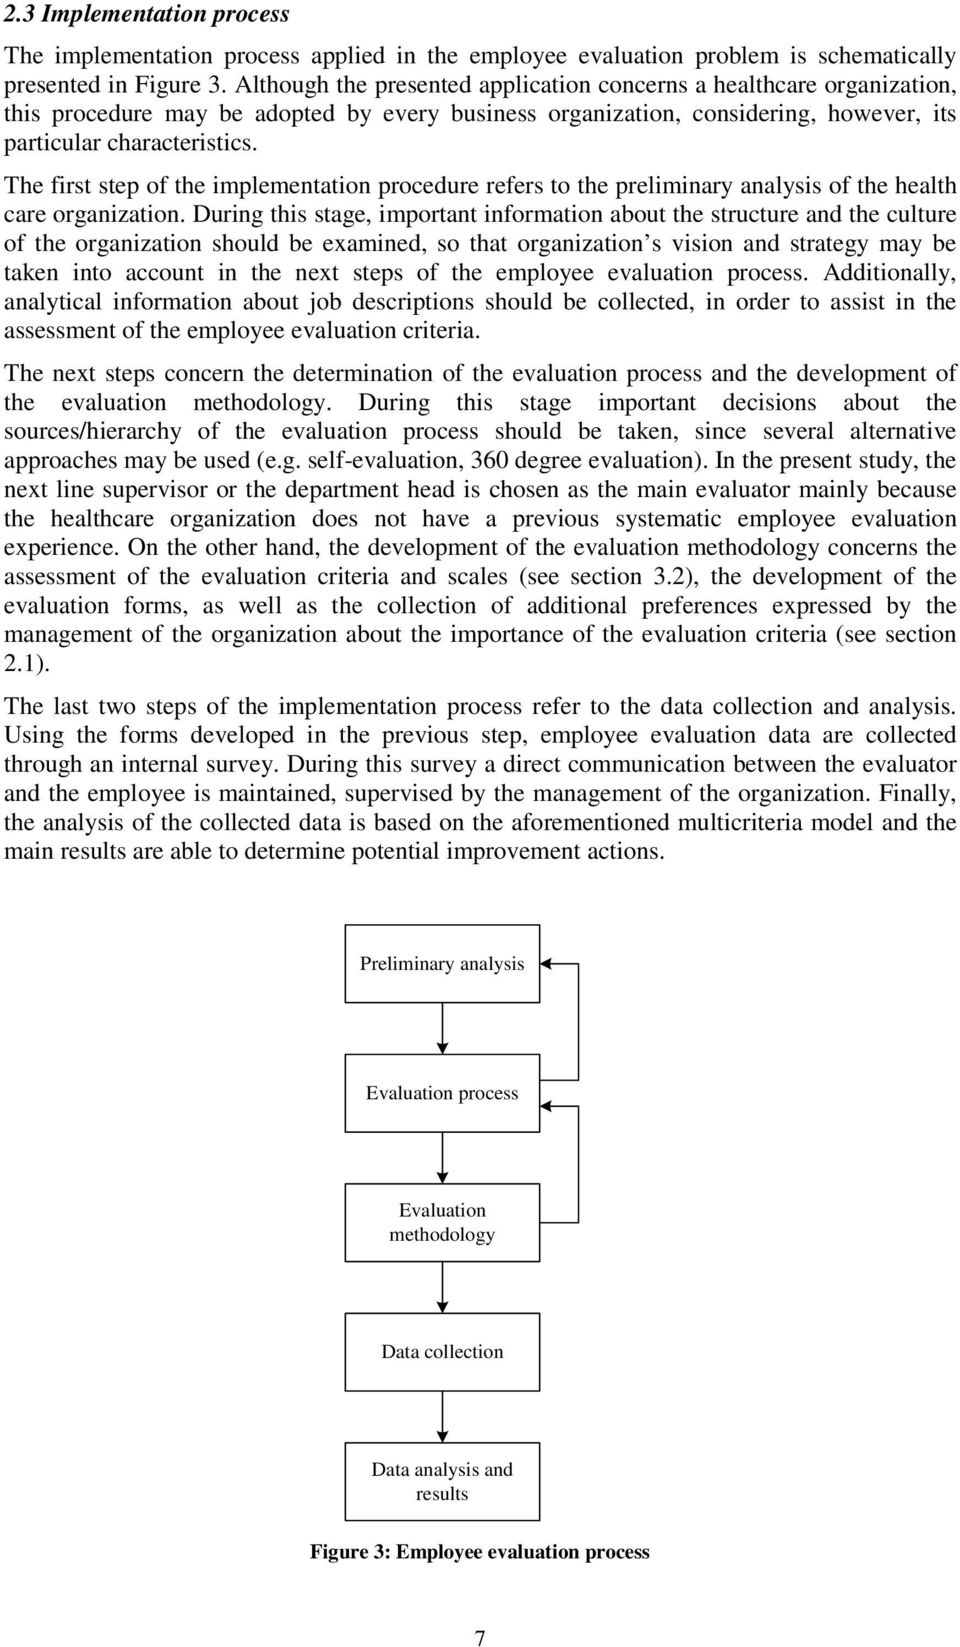 Developing an Employee Evaluation Management System: The Case of a